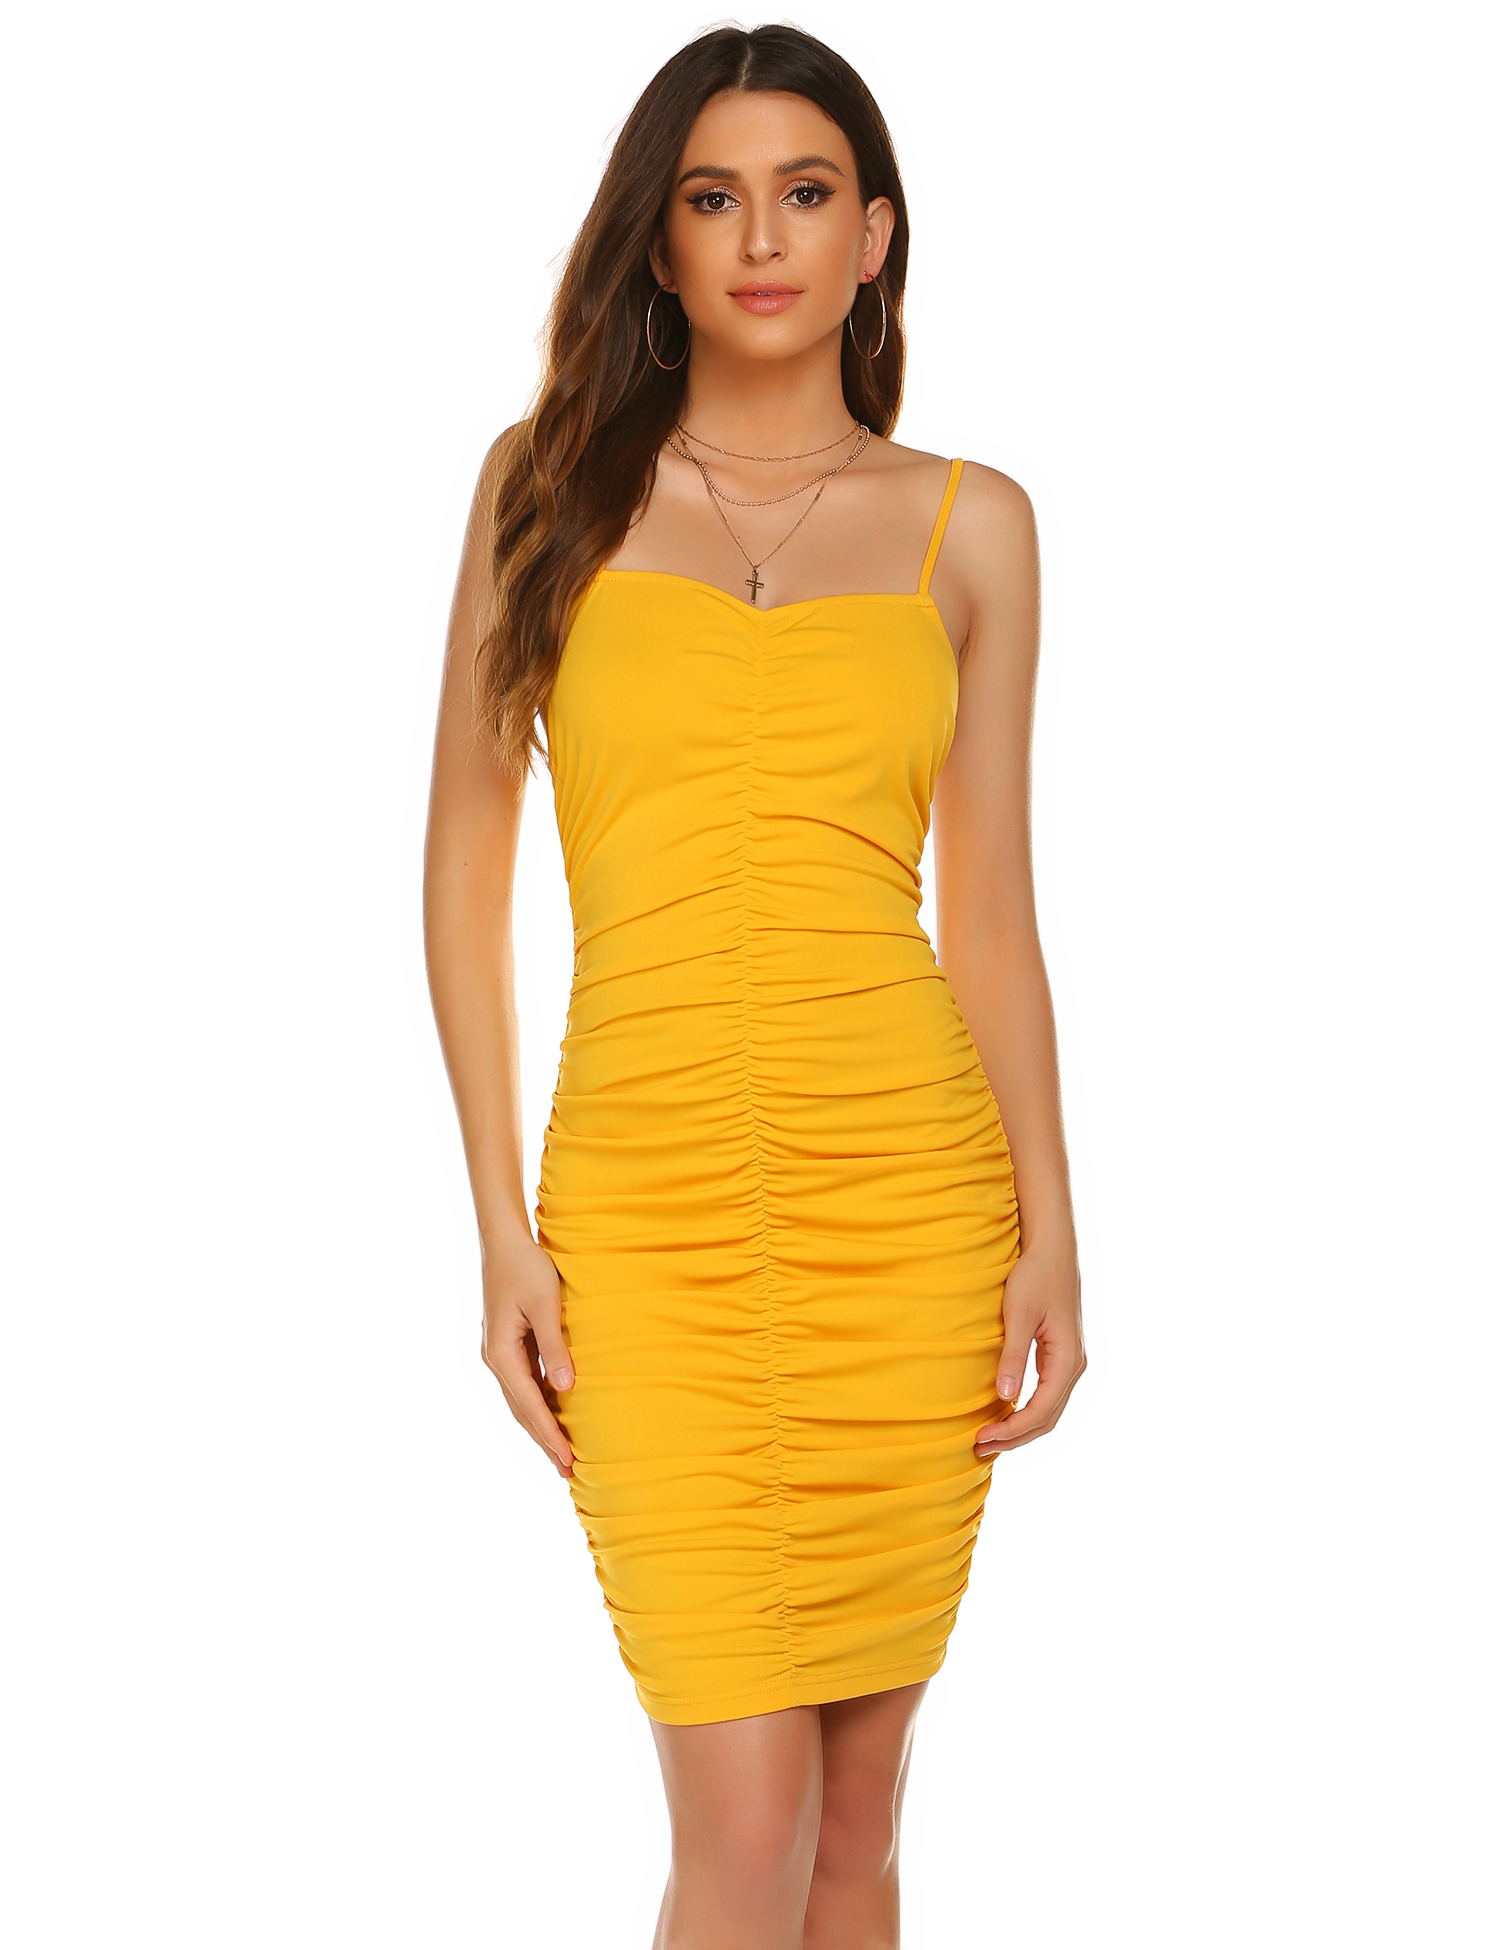 <font><b>Sexy</b></font> <font><b>Women</b></font> Spaghetti Strap <font><b>Dress</b></font> Strapless Sleeveless Backless Pleated Colour Yellow <font><b>Bodycon</b></font> Party <font><b>Dress</b></font> Slim Style 2020 image